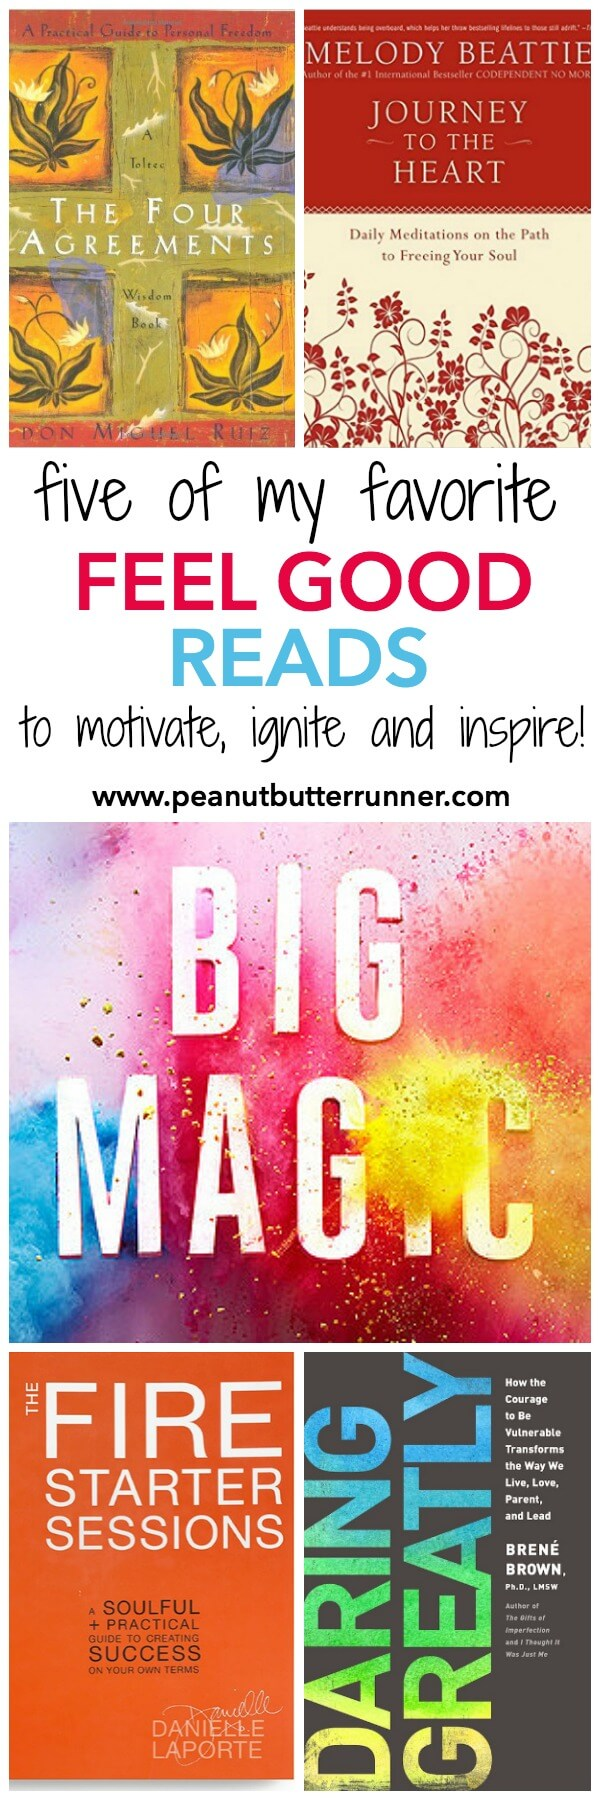 5 of my favorite feel good reads to motivate, inspire and ignite.